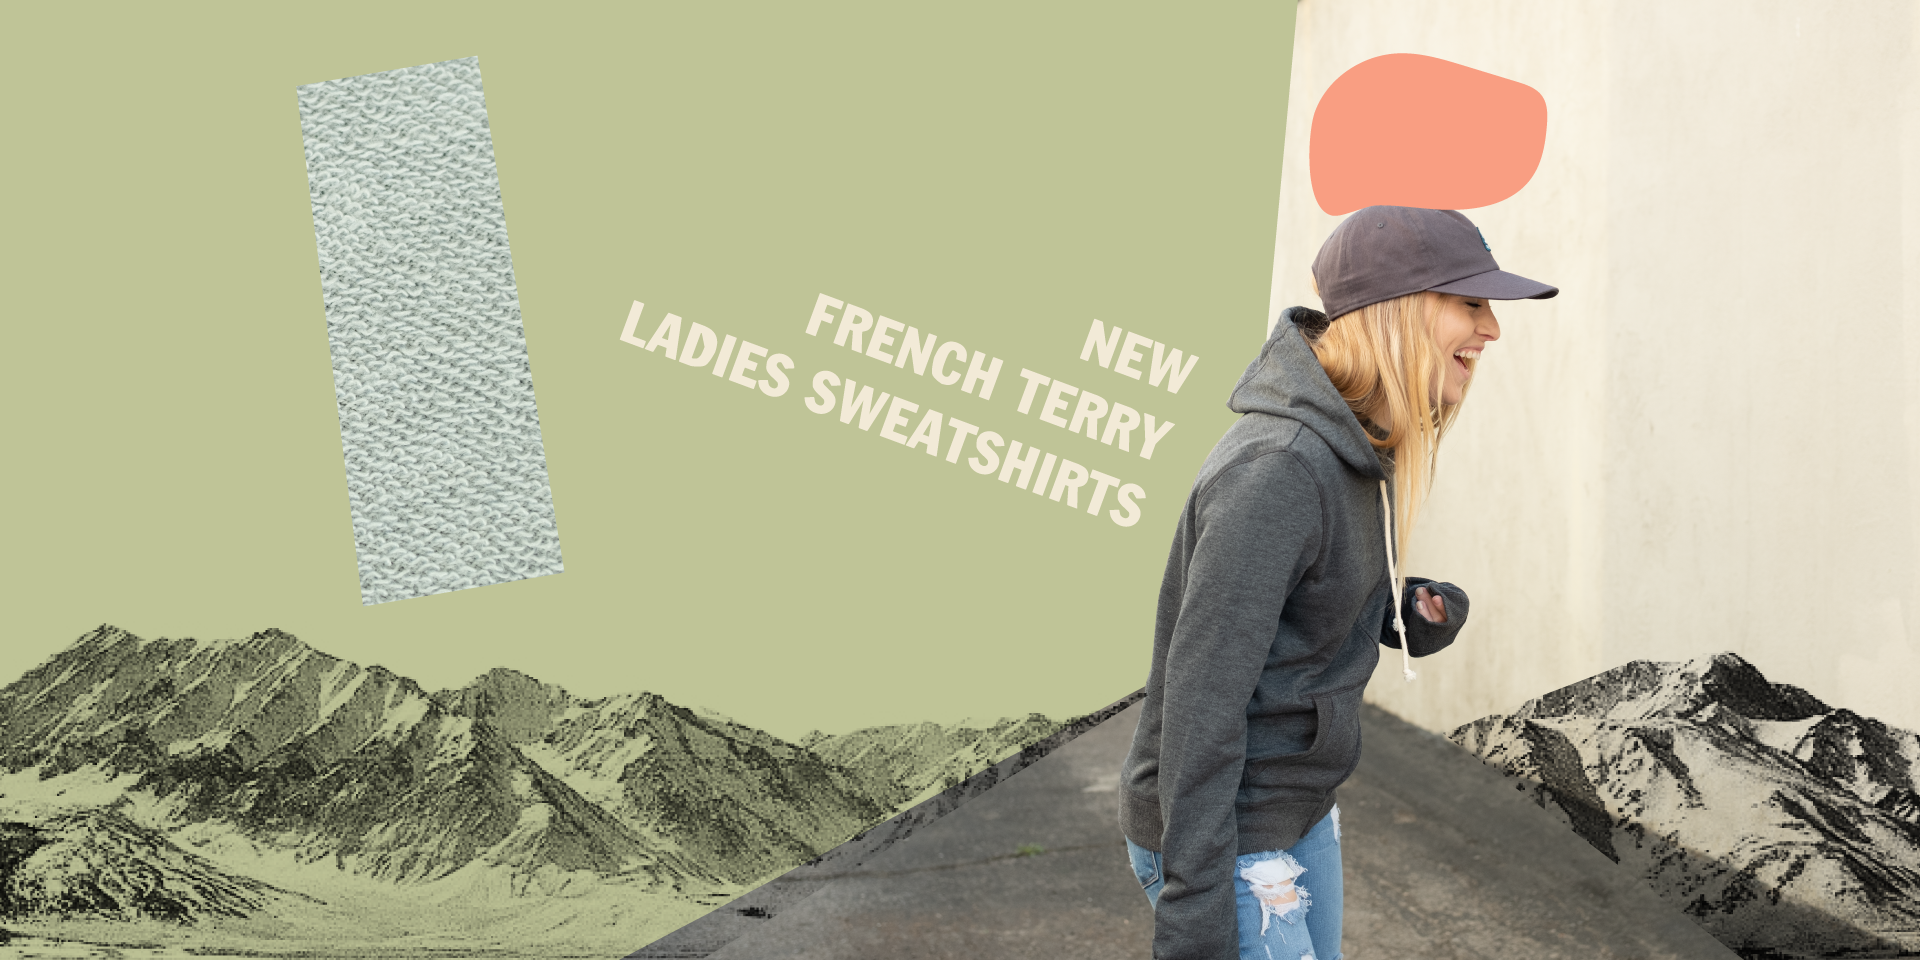 New French Terry Ladies Sweatshirts